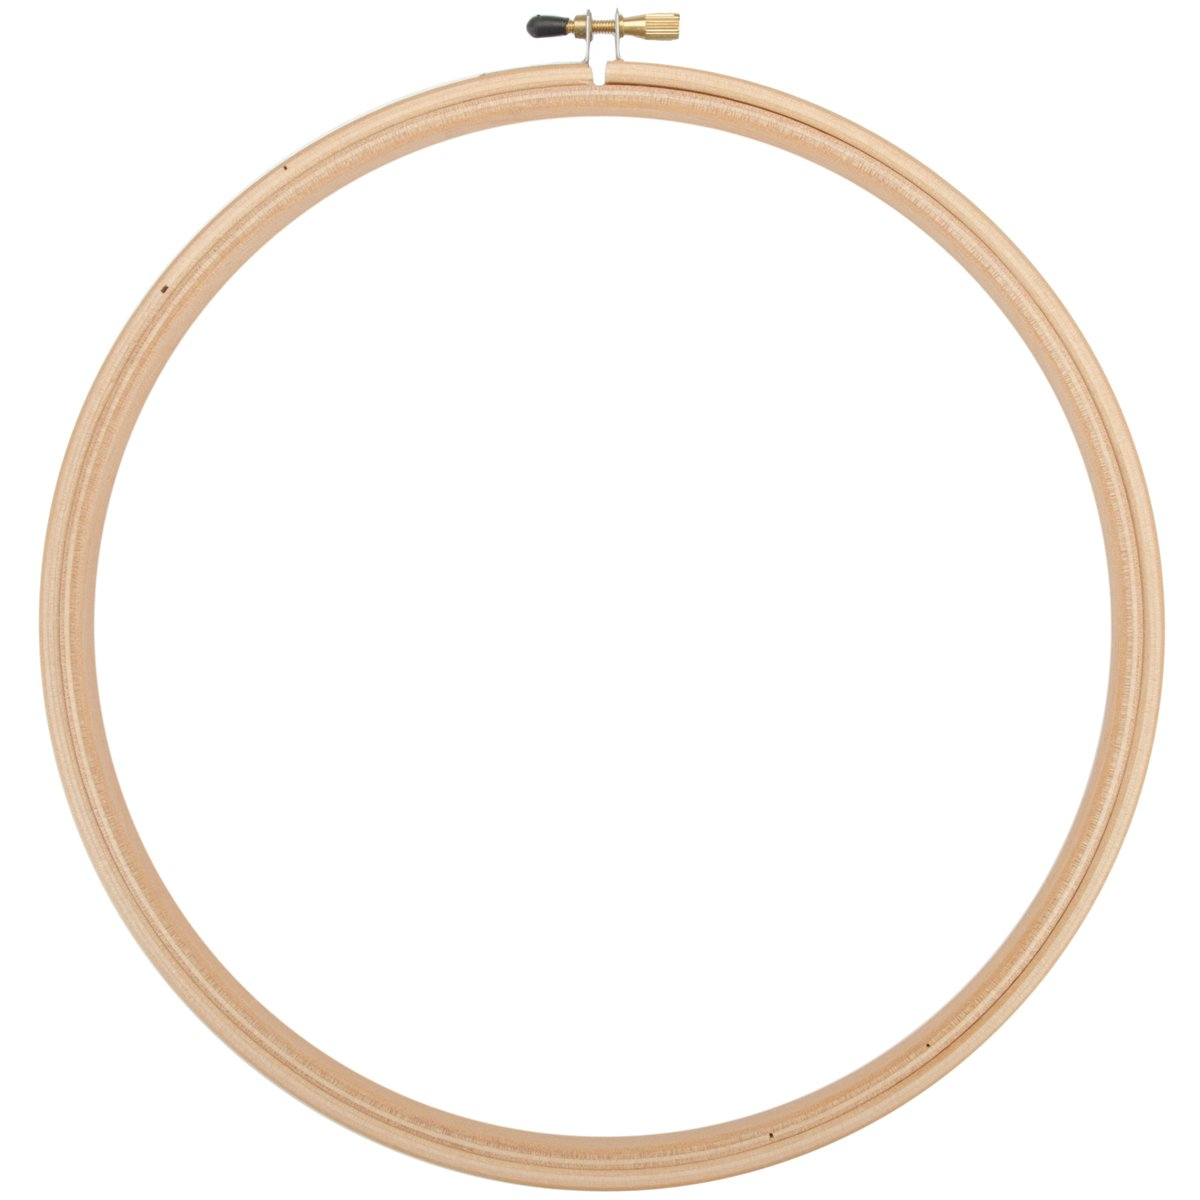 Edmunds Wood Embroidery Hoop with Round Edges, 12-Inch